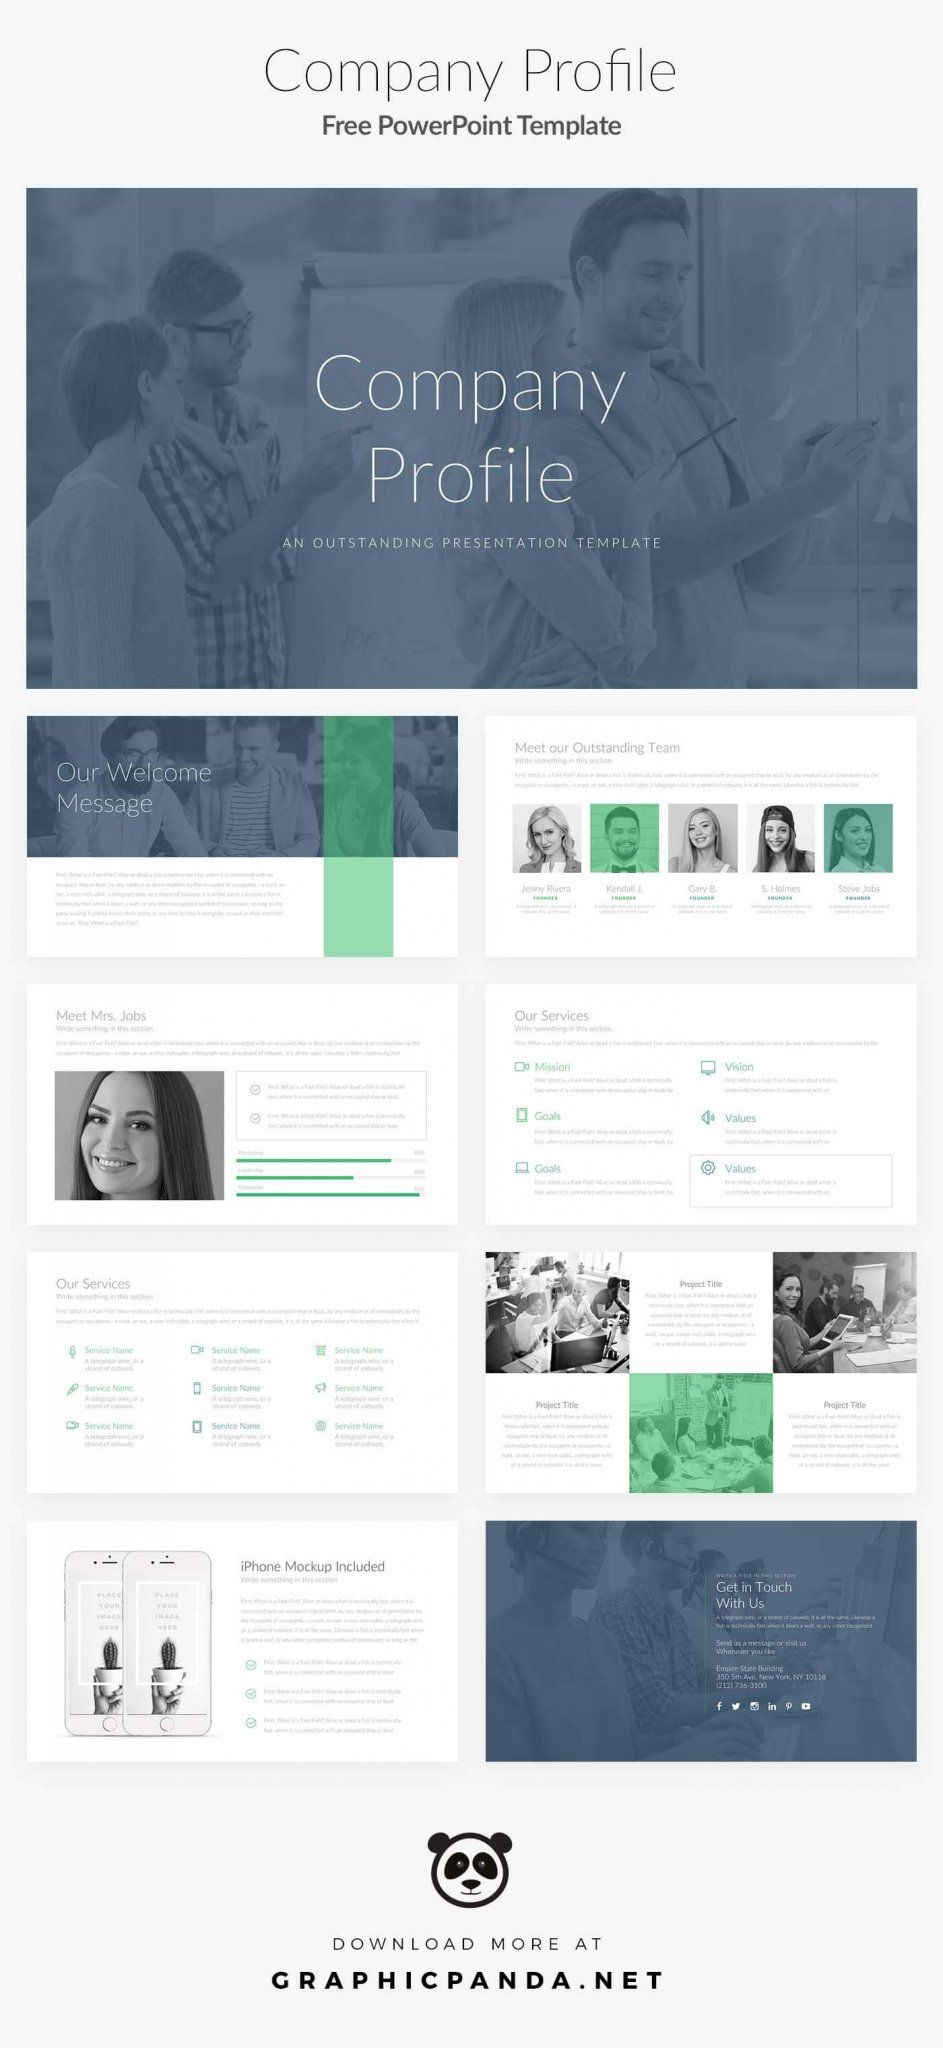 Free Profile Templates Powerpoint Template Company Profile  Work_Presentation  Pinterest .